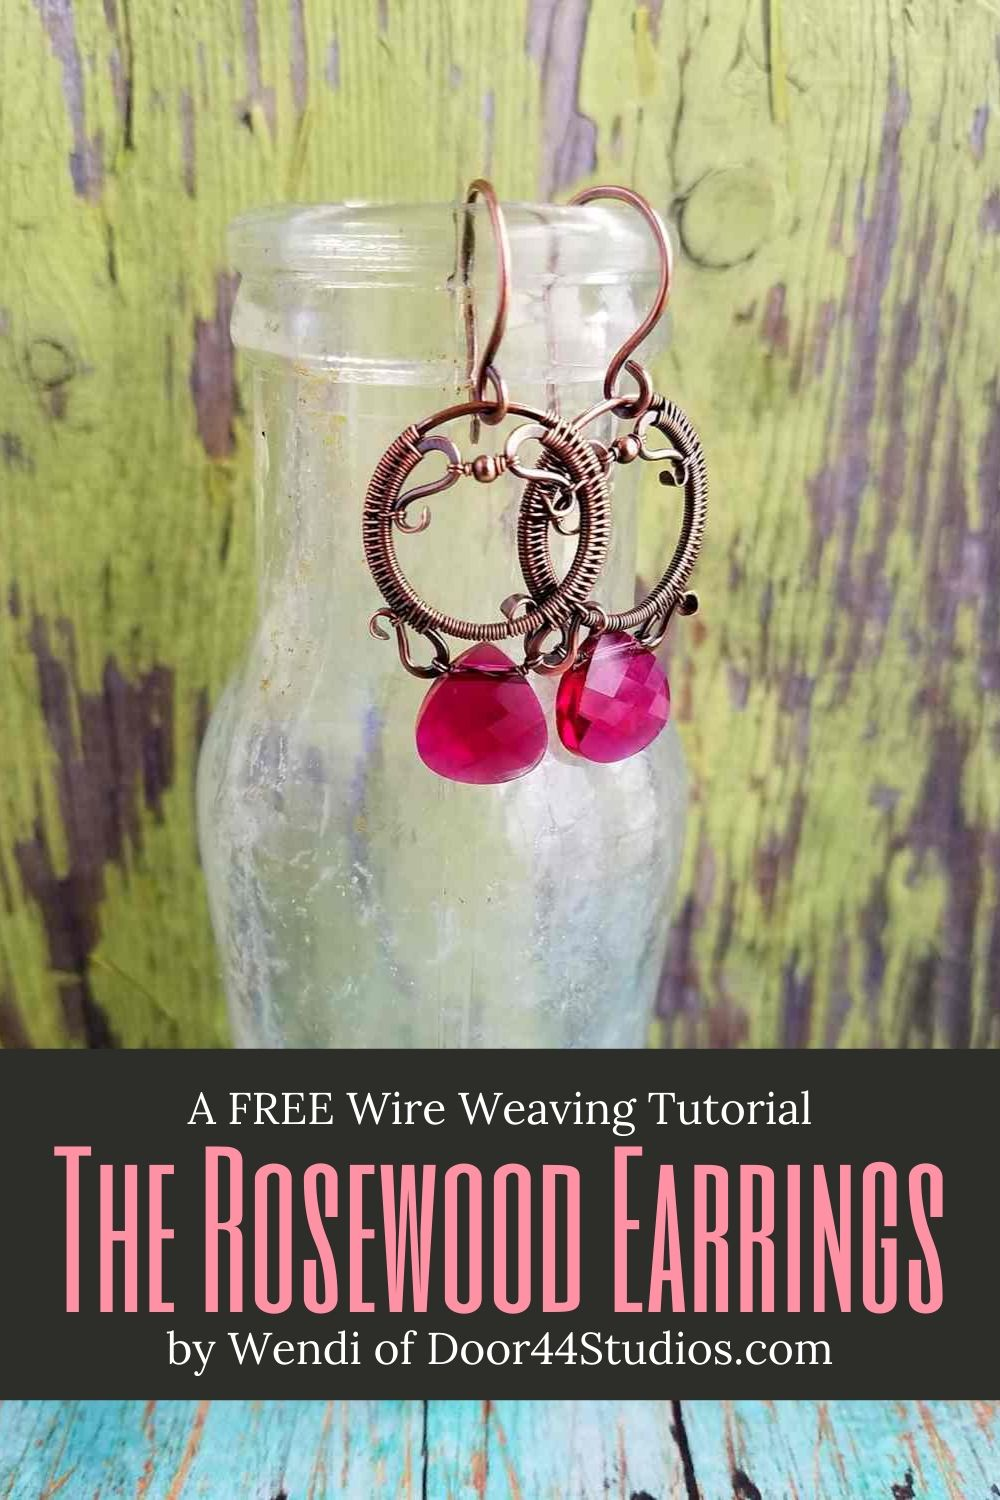 Would you like to learn the art of wire weaving? The free Rosewood Earrings tutorial is both fun and challenging for beginners. And you'll have an elegant pair of earrings to show off when you're done.